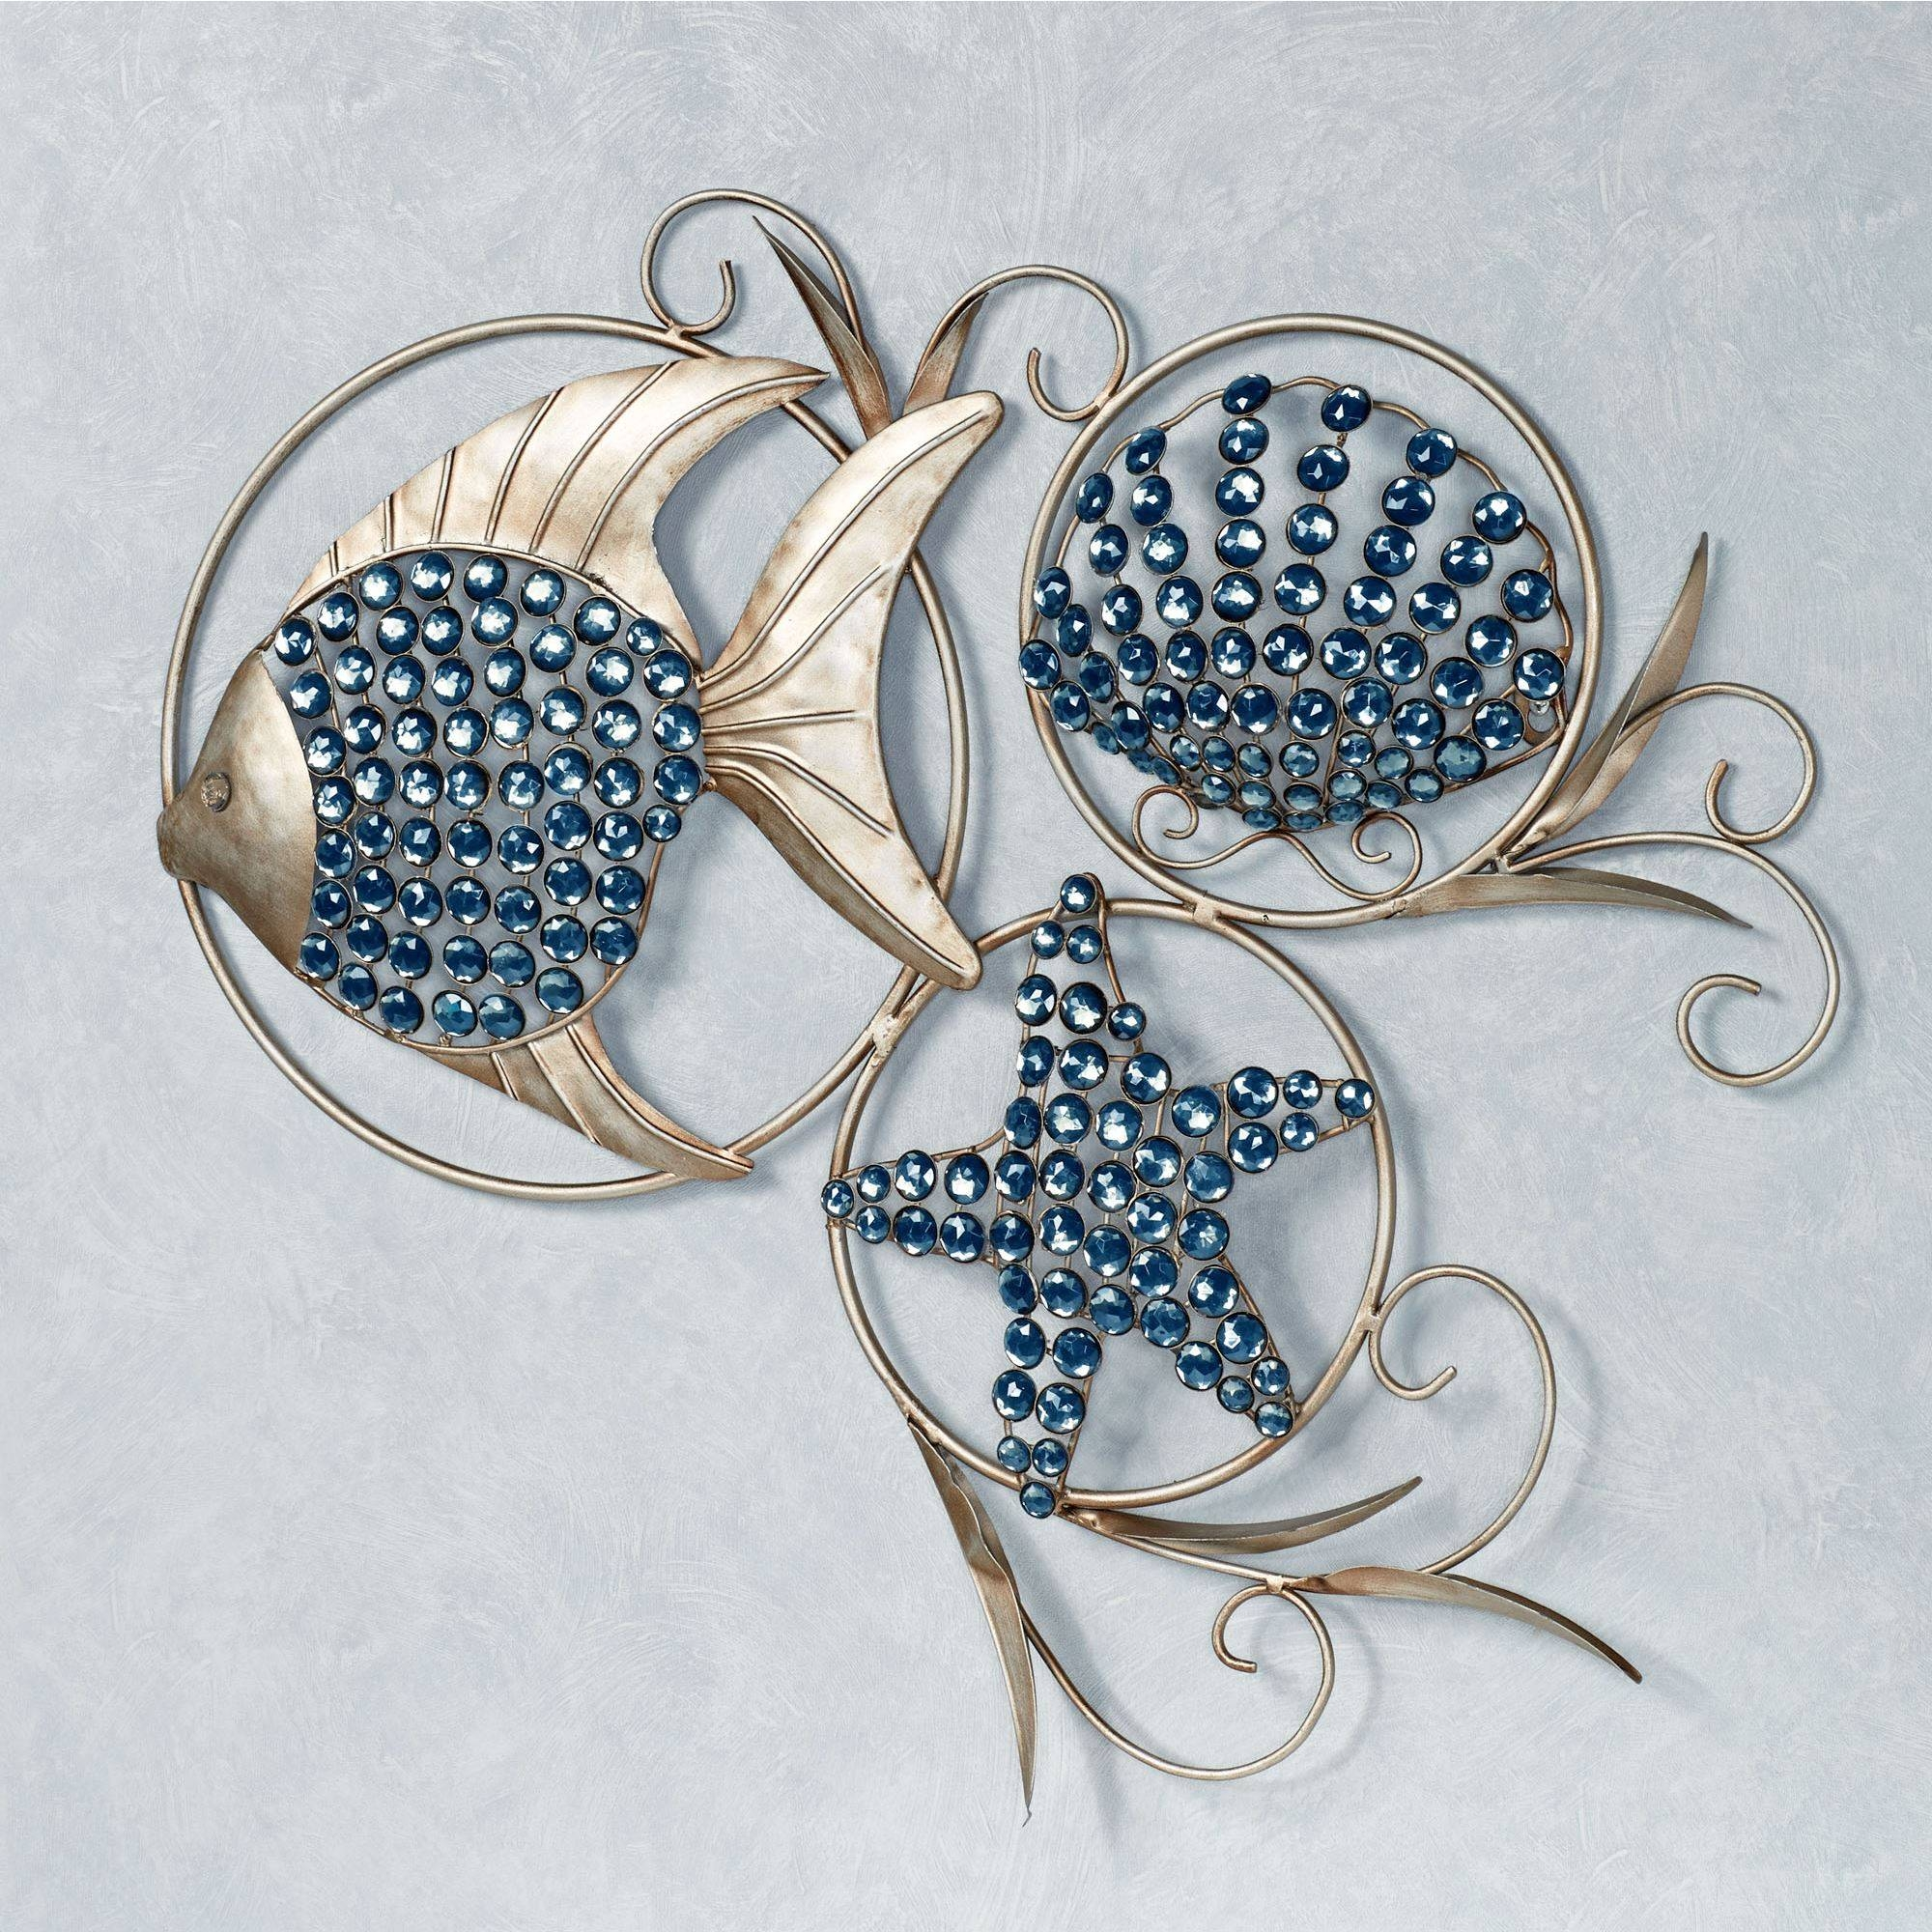 Ocean Gems Fish And Seashell Metal Wall Art Intended For 2018 Seahorse Metal Wall Art (View 6 of 20)